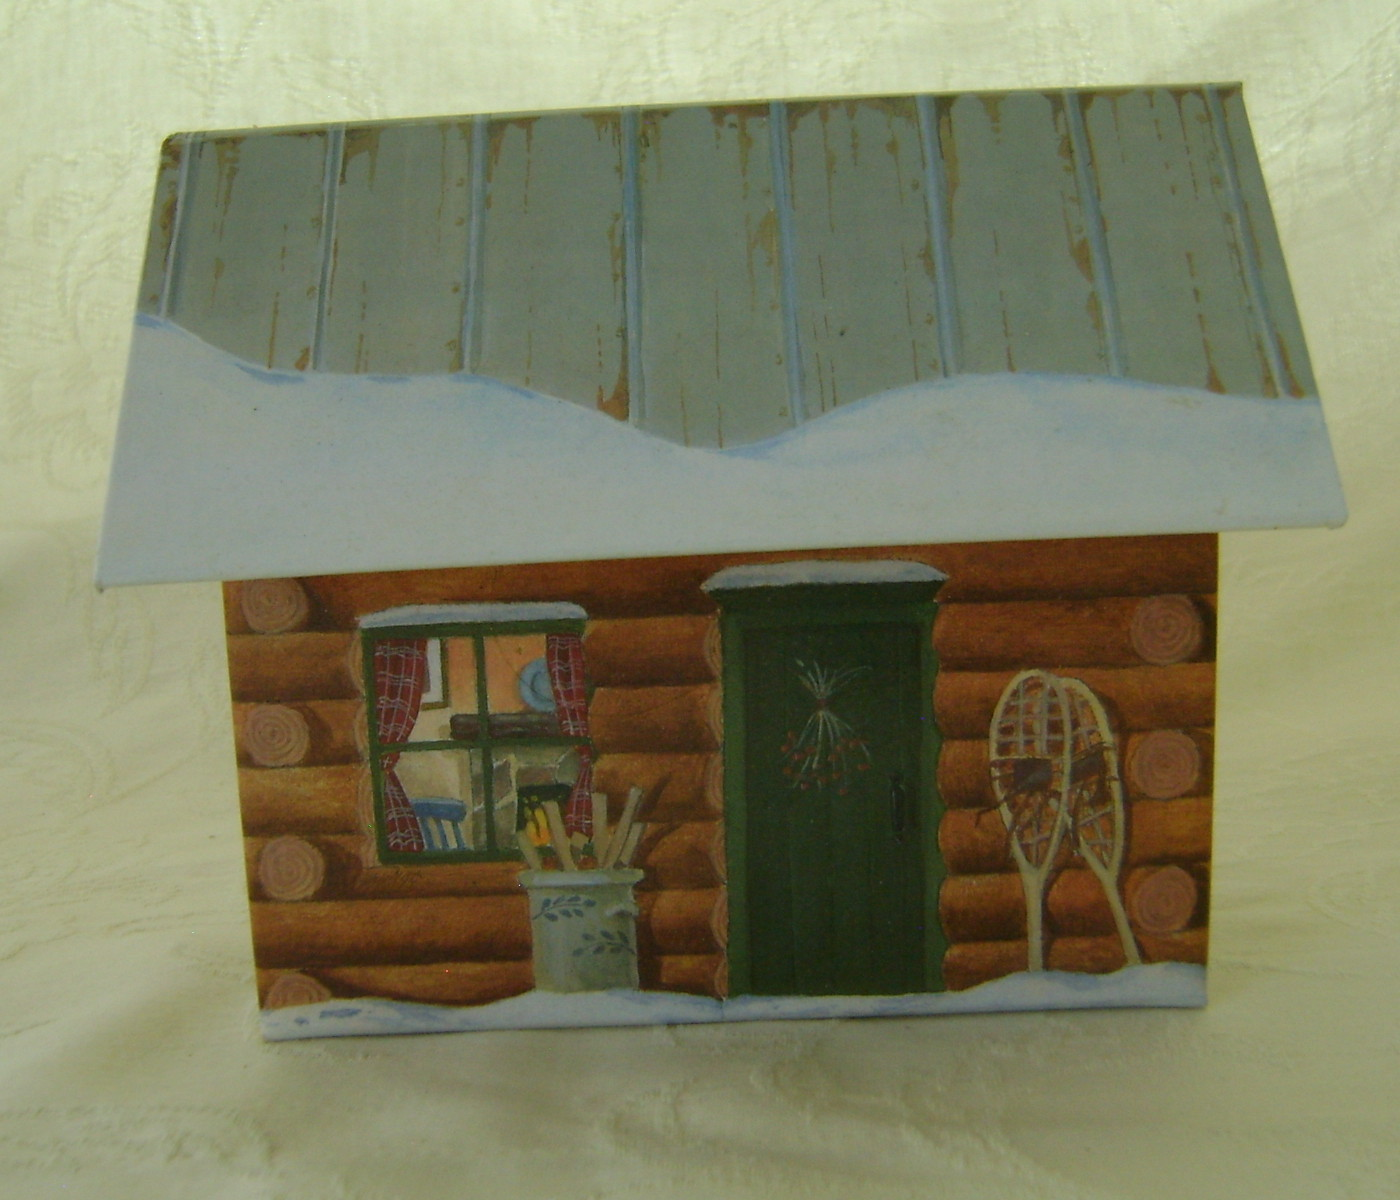 Upcycled Log Cabin Recipe File w/Recipes & Cookie Cutters